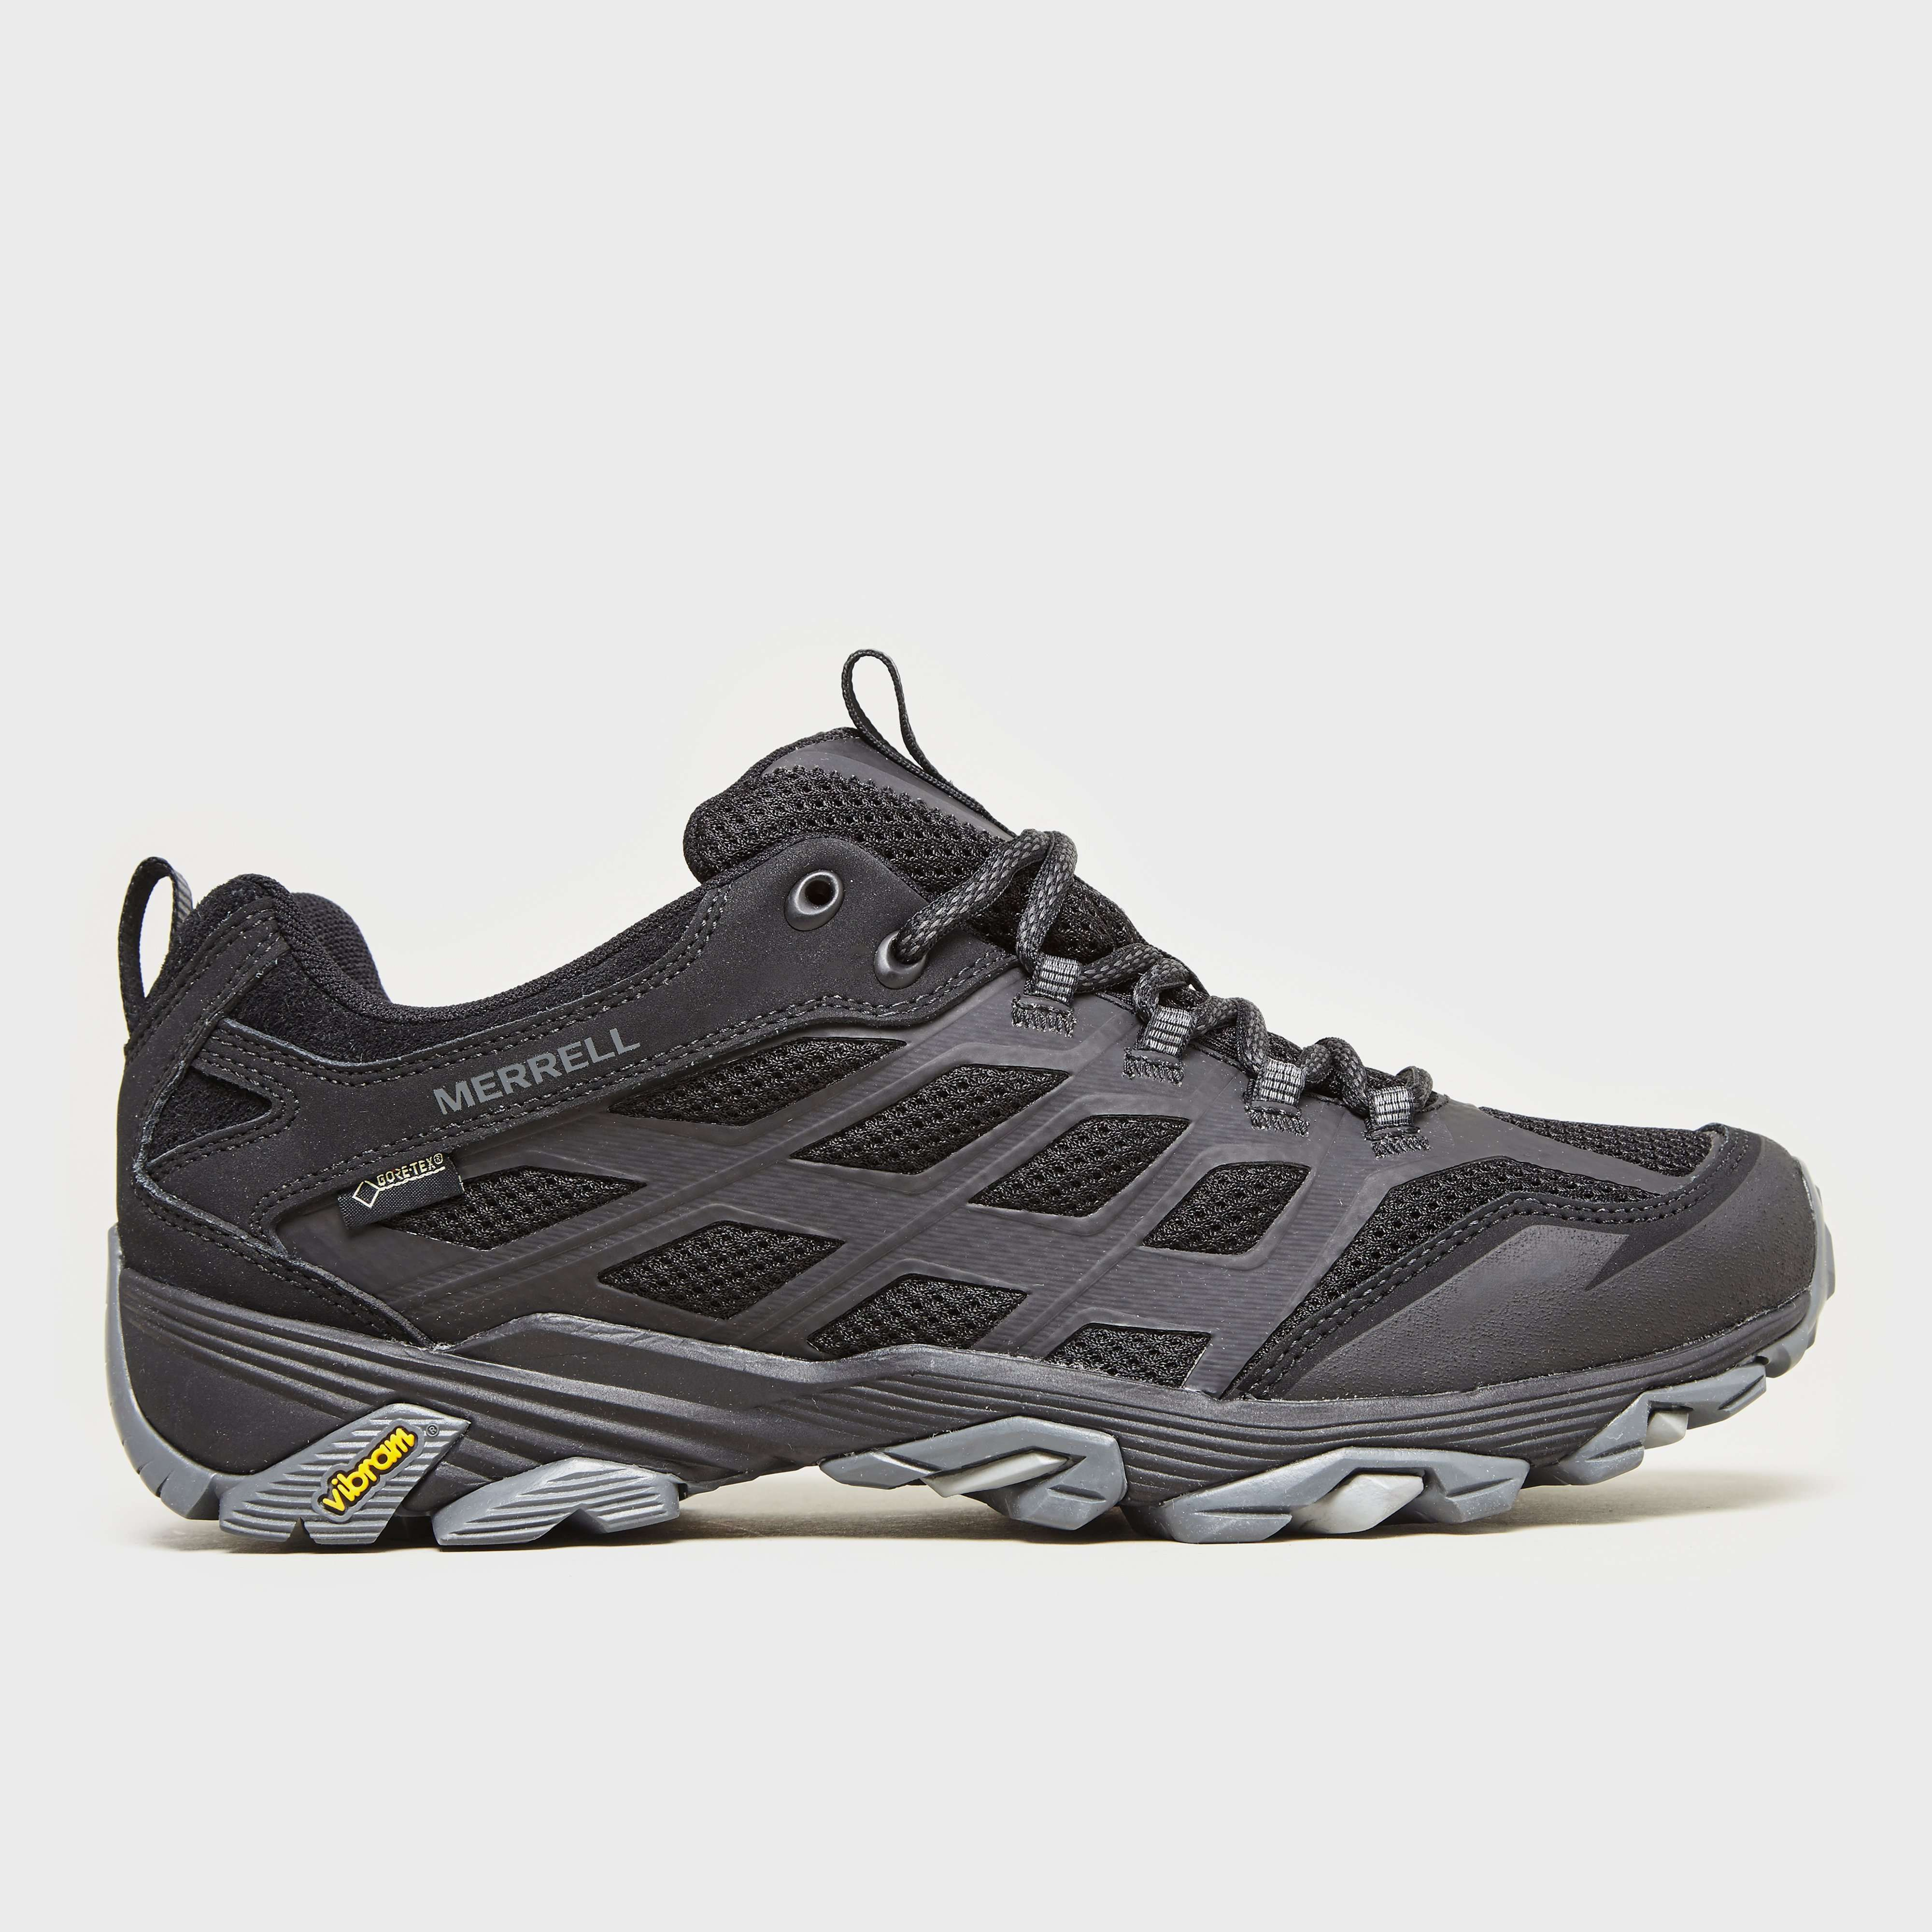 80762e412f019 MERRELL Men s Moab FST GORE-TEX® Shoe - find out more on our site ...